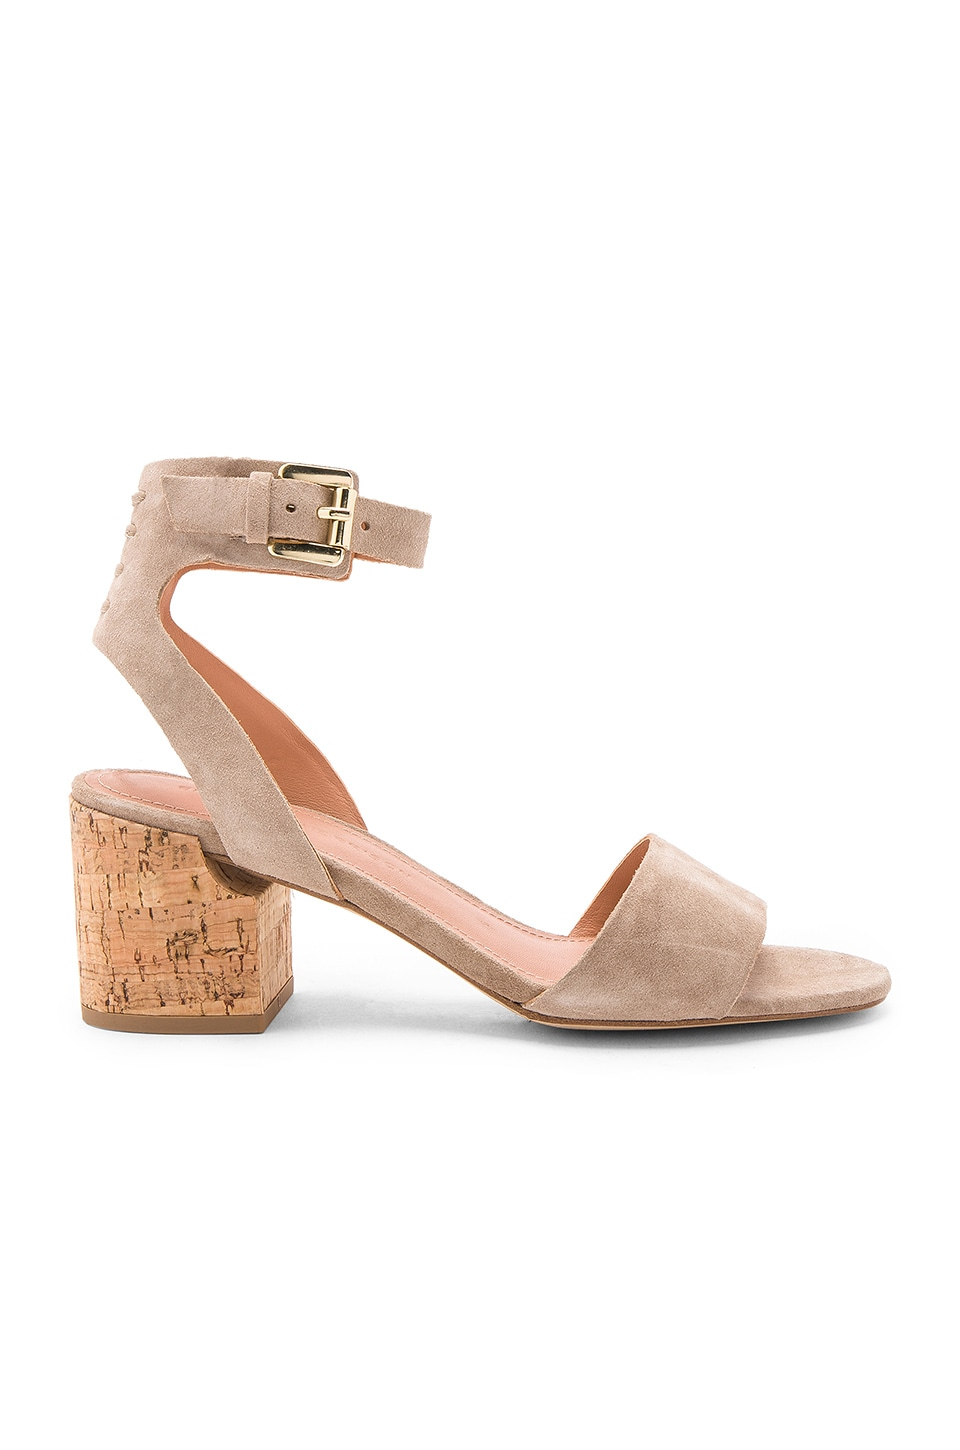 Sigerson Morrison Riva 2 Heel in Seppia